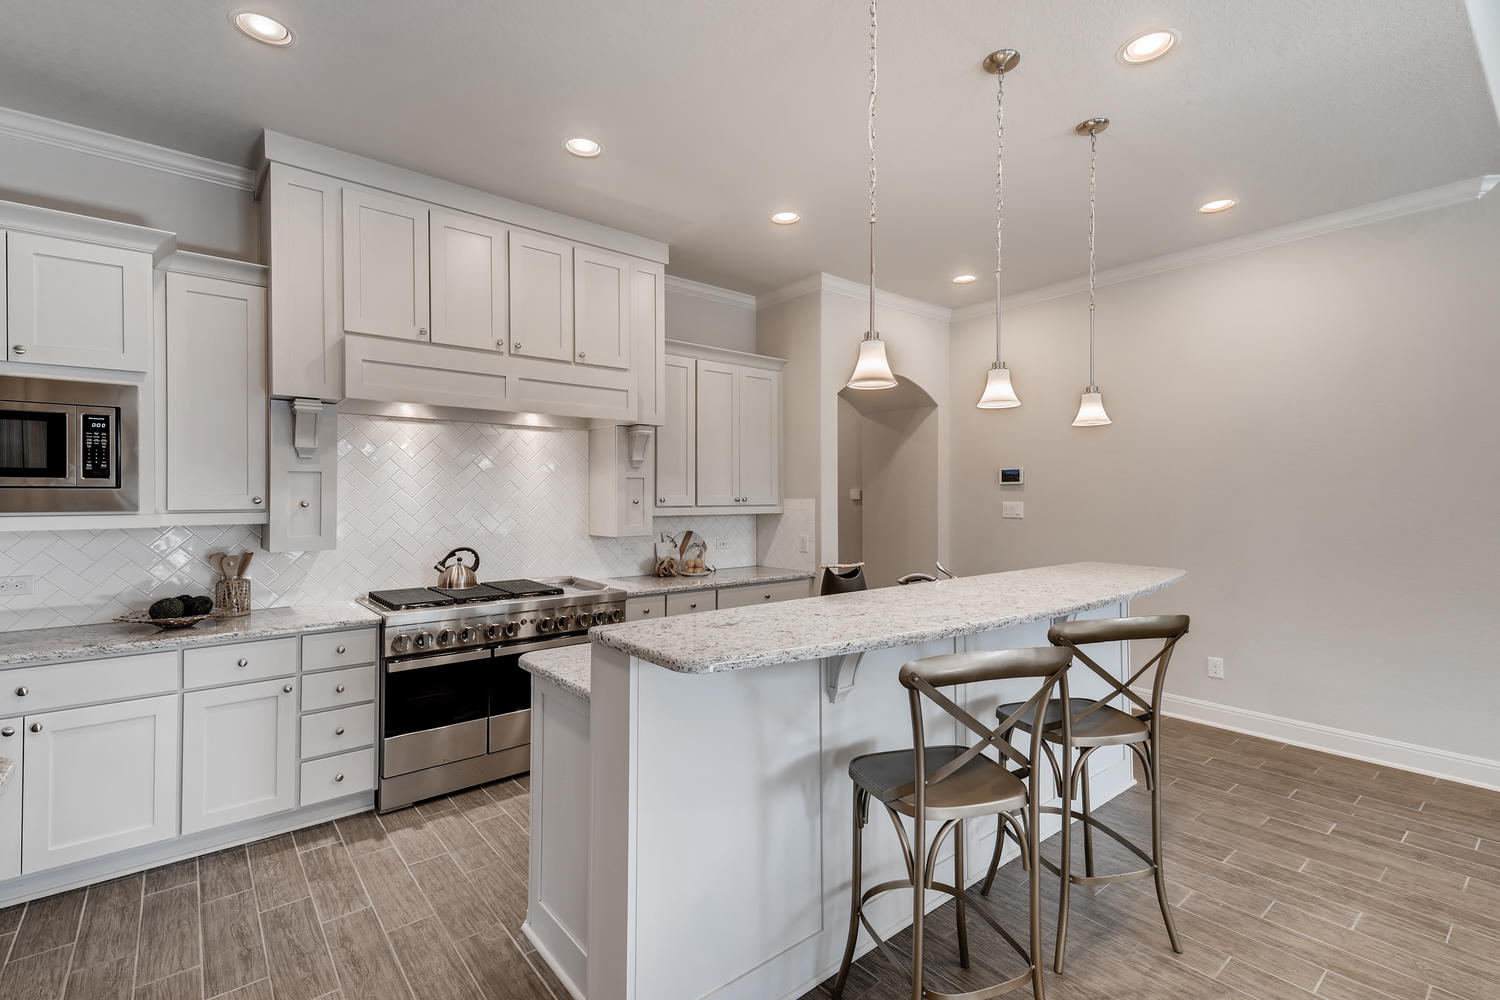 Full home staging in Las Vegas, Nevada, featuring a kitchen